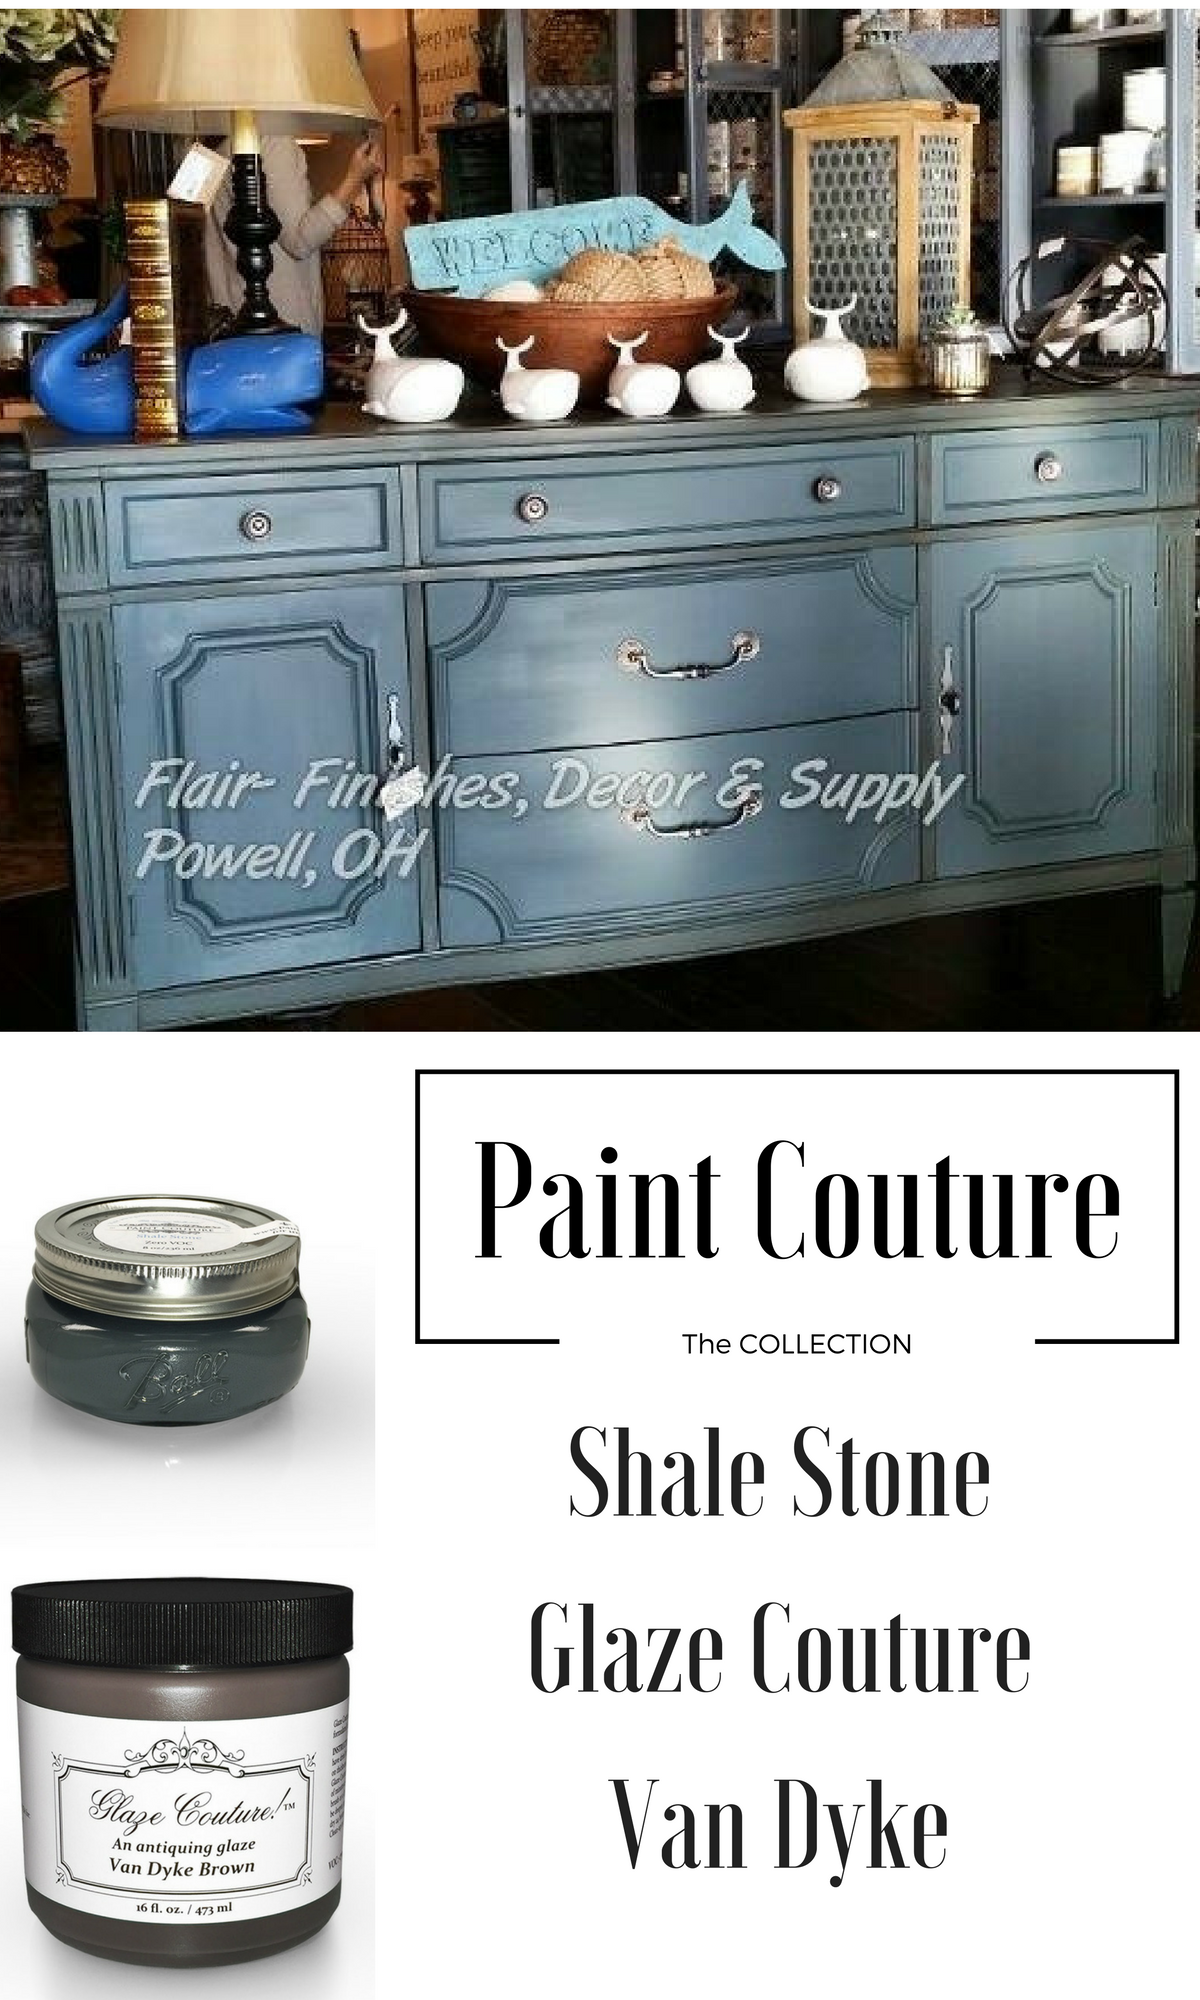 Delightful Paint Couture! Is A Low VOC, Water Based Acrylic Paint, Now Available